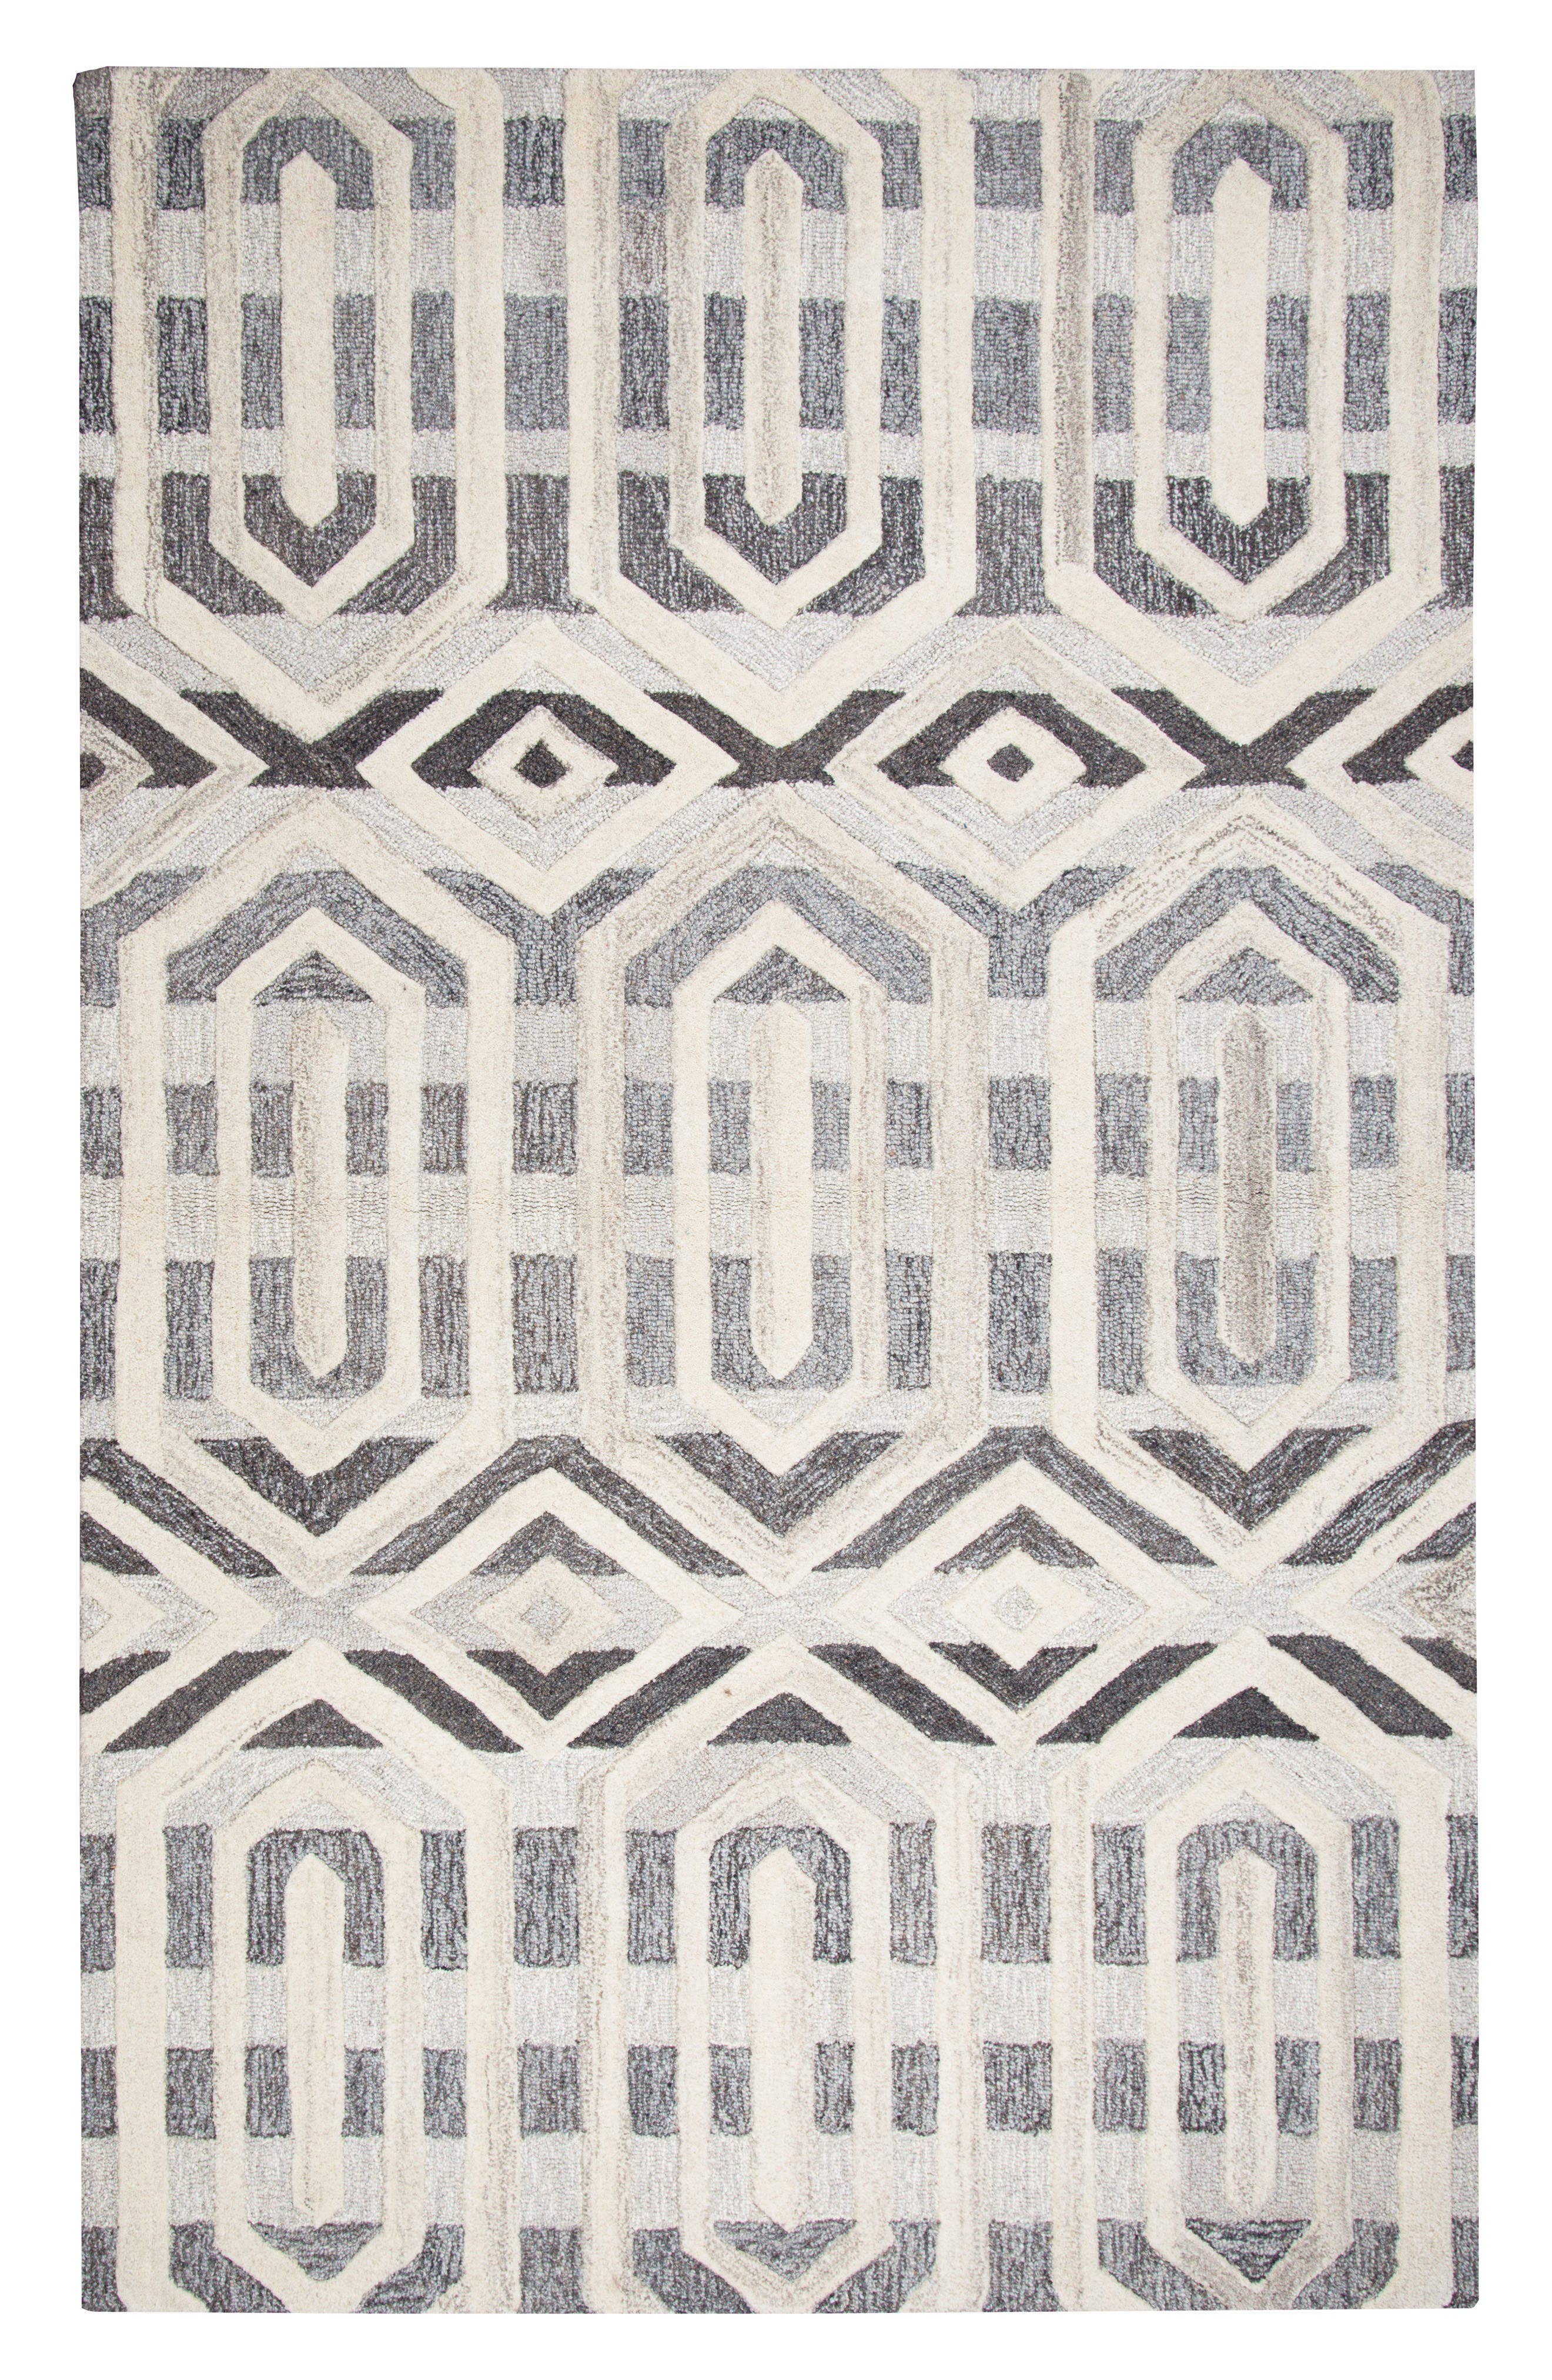 Rizzy Home Urban Octagon Hand Tufted Wool Area Rug